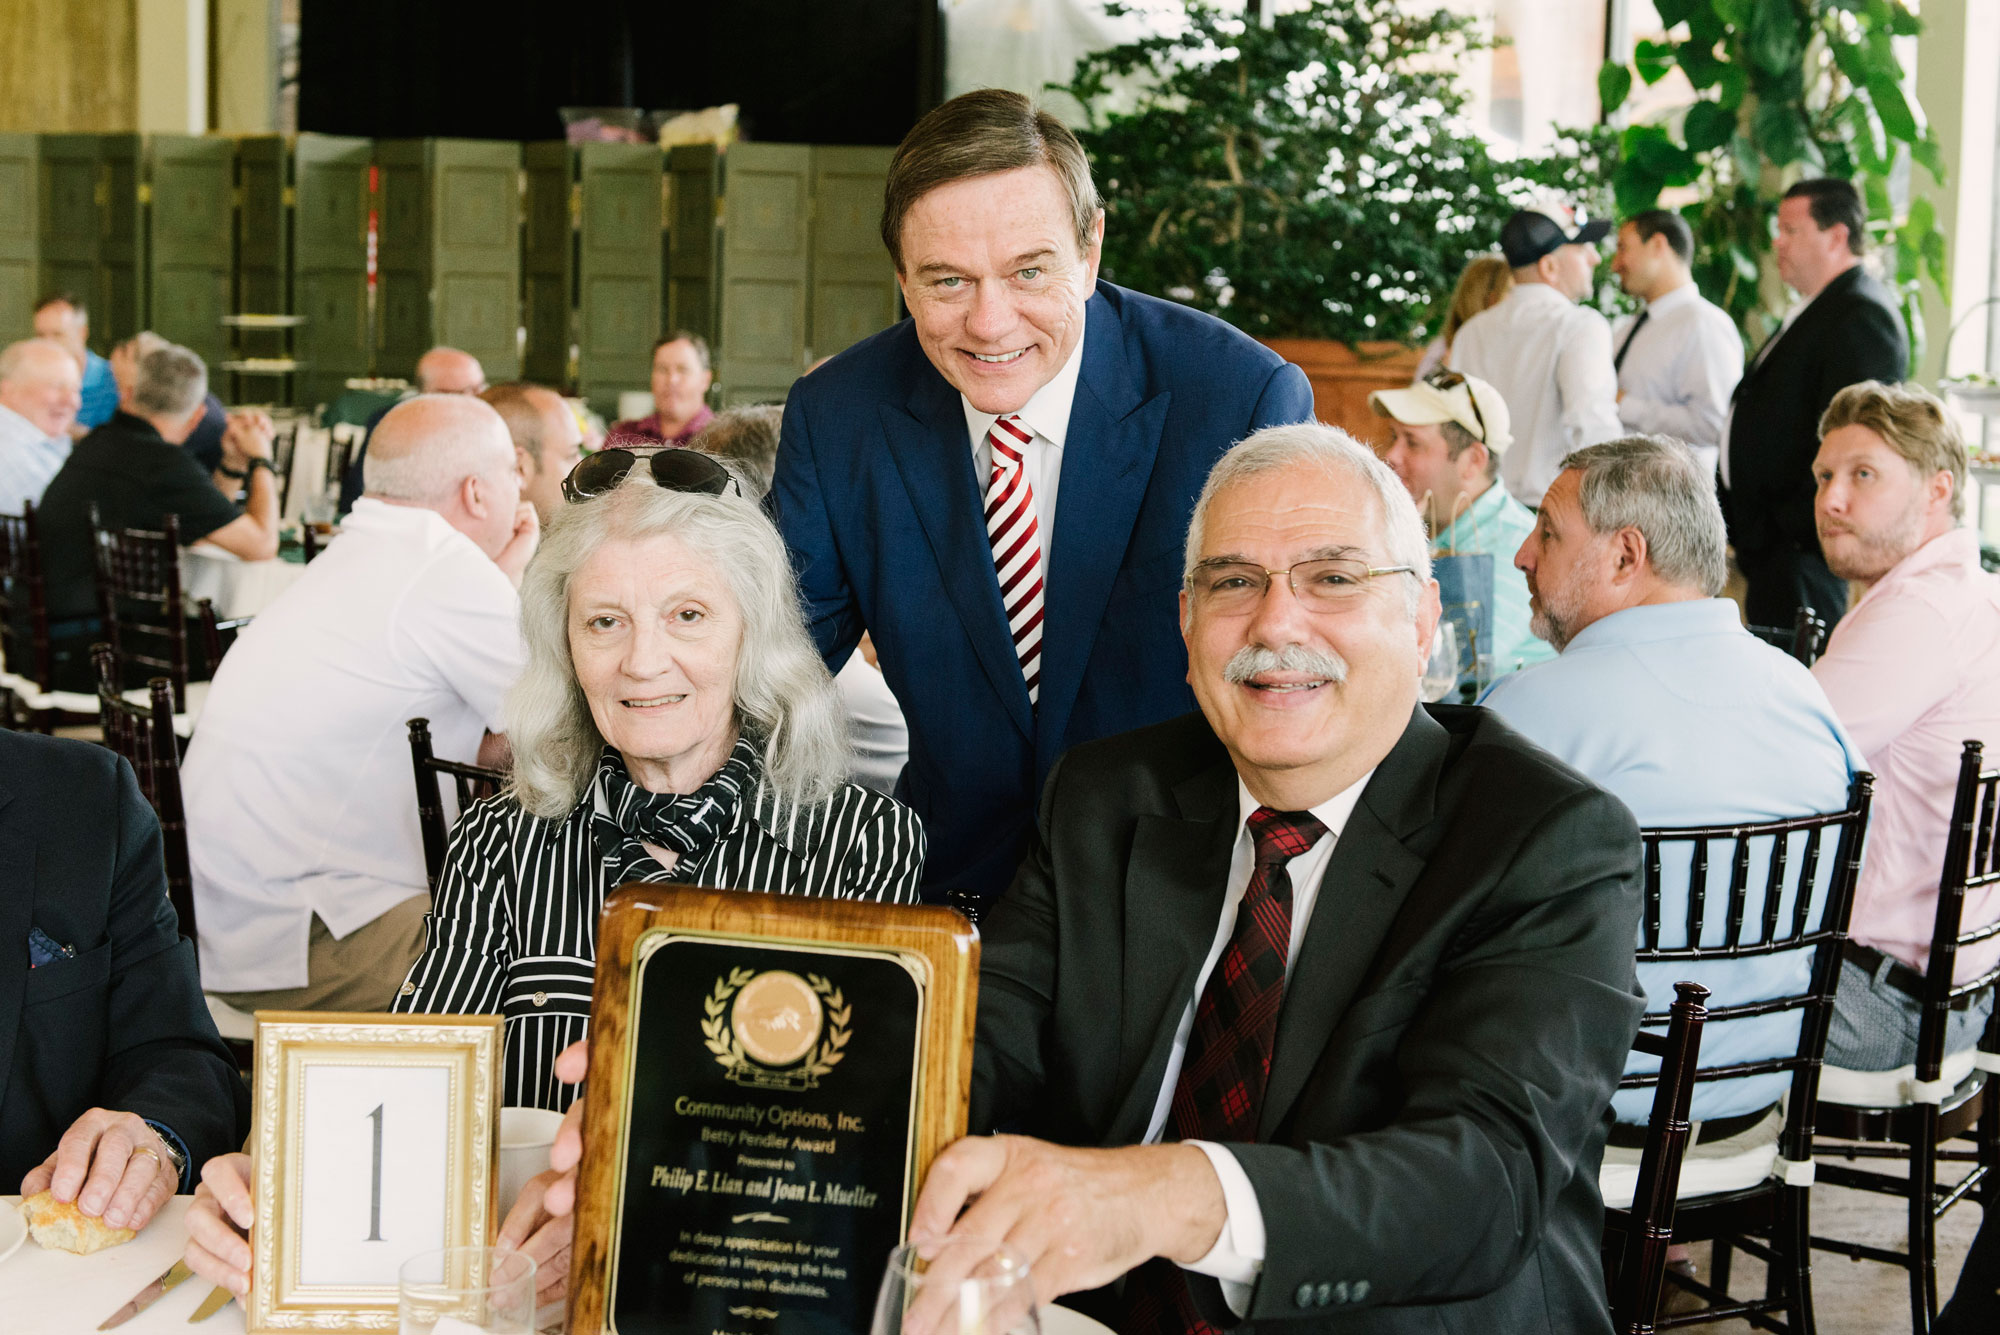 Phil Lian and Joan Mueller were honored during Community Options, Inc.'s spring iMatter Golf Classic at TPC Jasna Polana in Princeton, NJ. on May 21, 2018